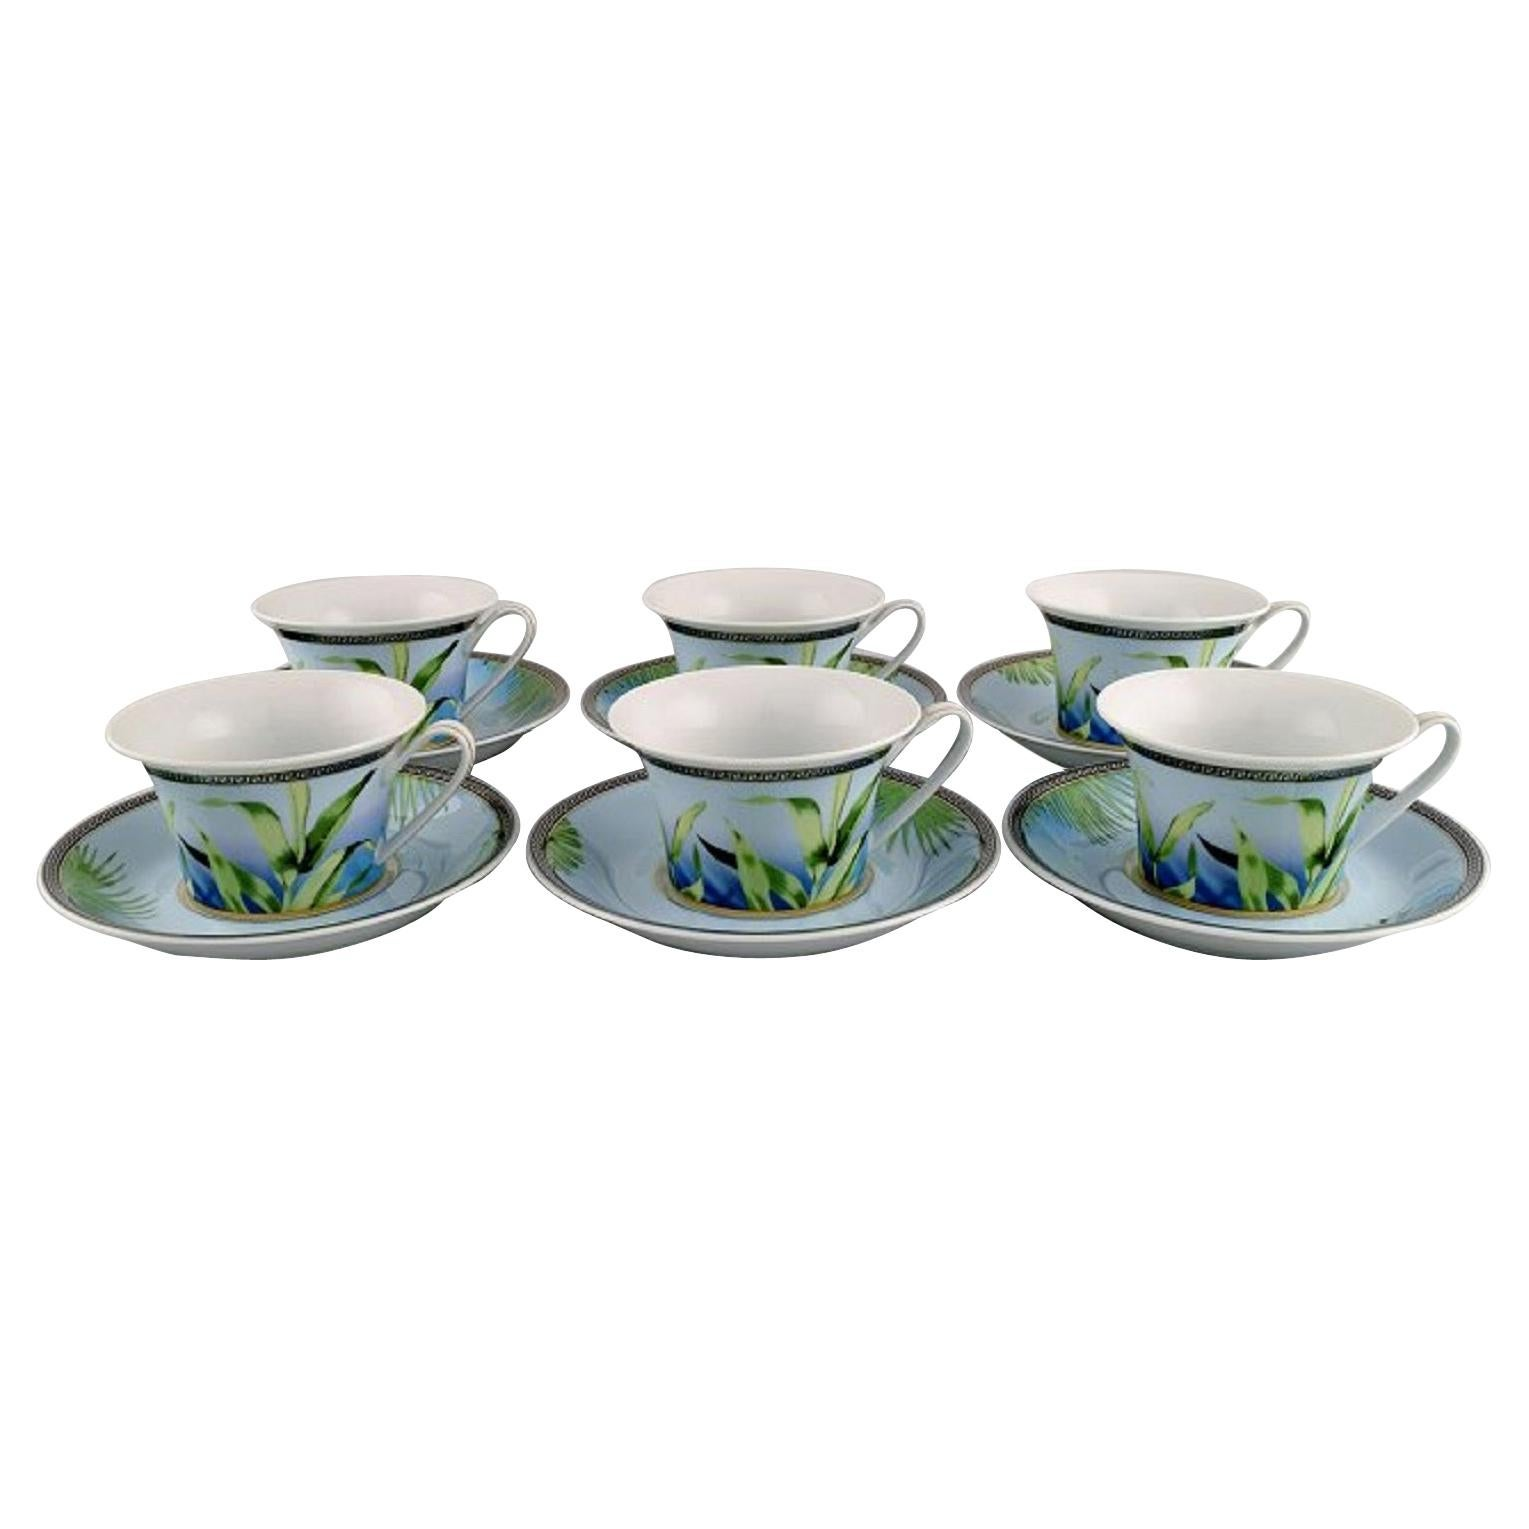 Gianni Versace for Rosenthal, Six Jungle Tea Cups with Saucer in Porcelain